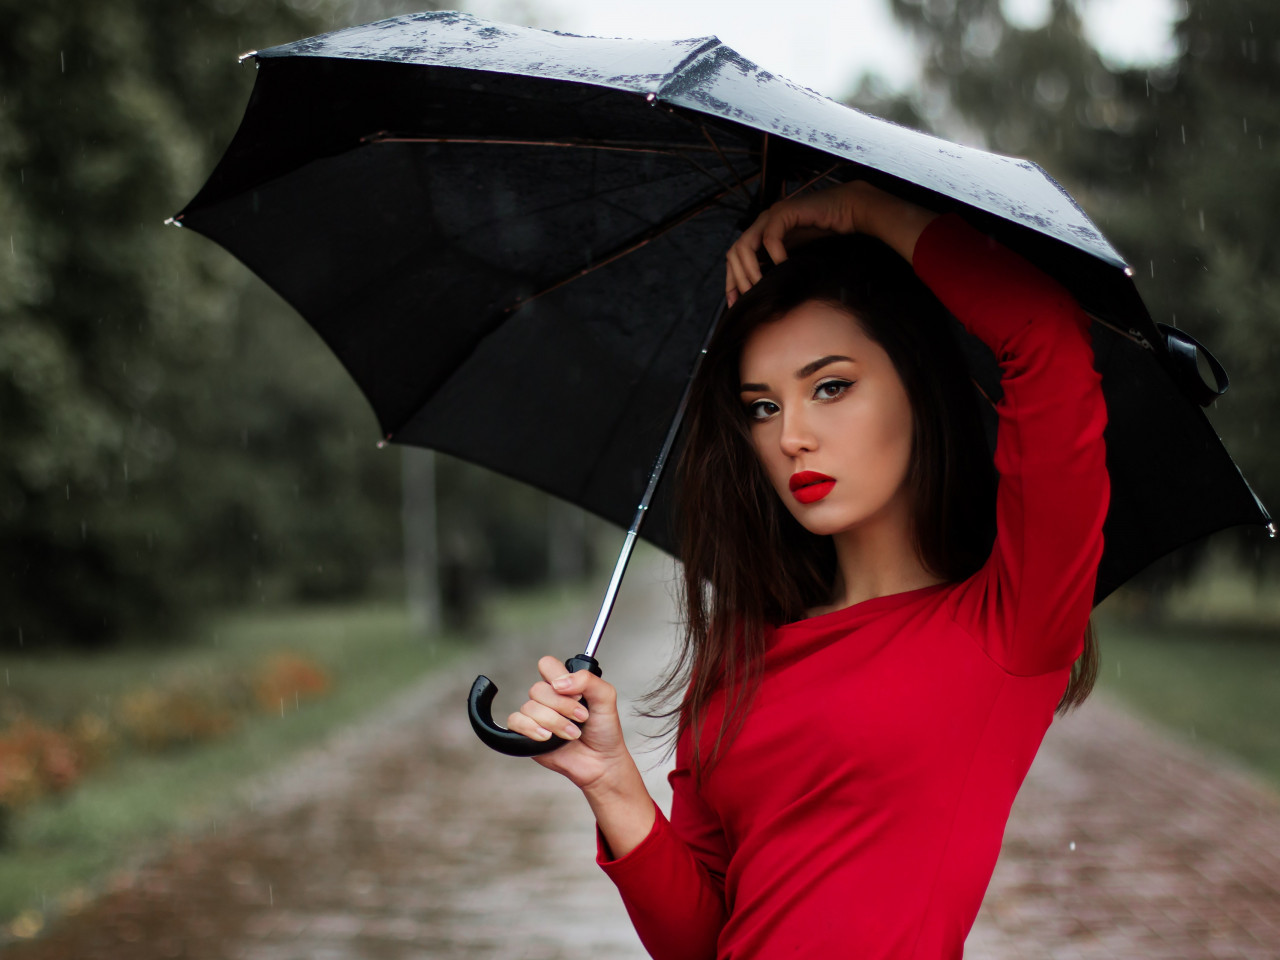 Beauitful girl in a rainy day | 1280x960 wallpaper